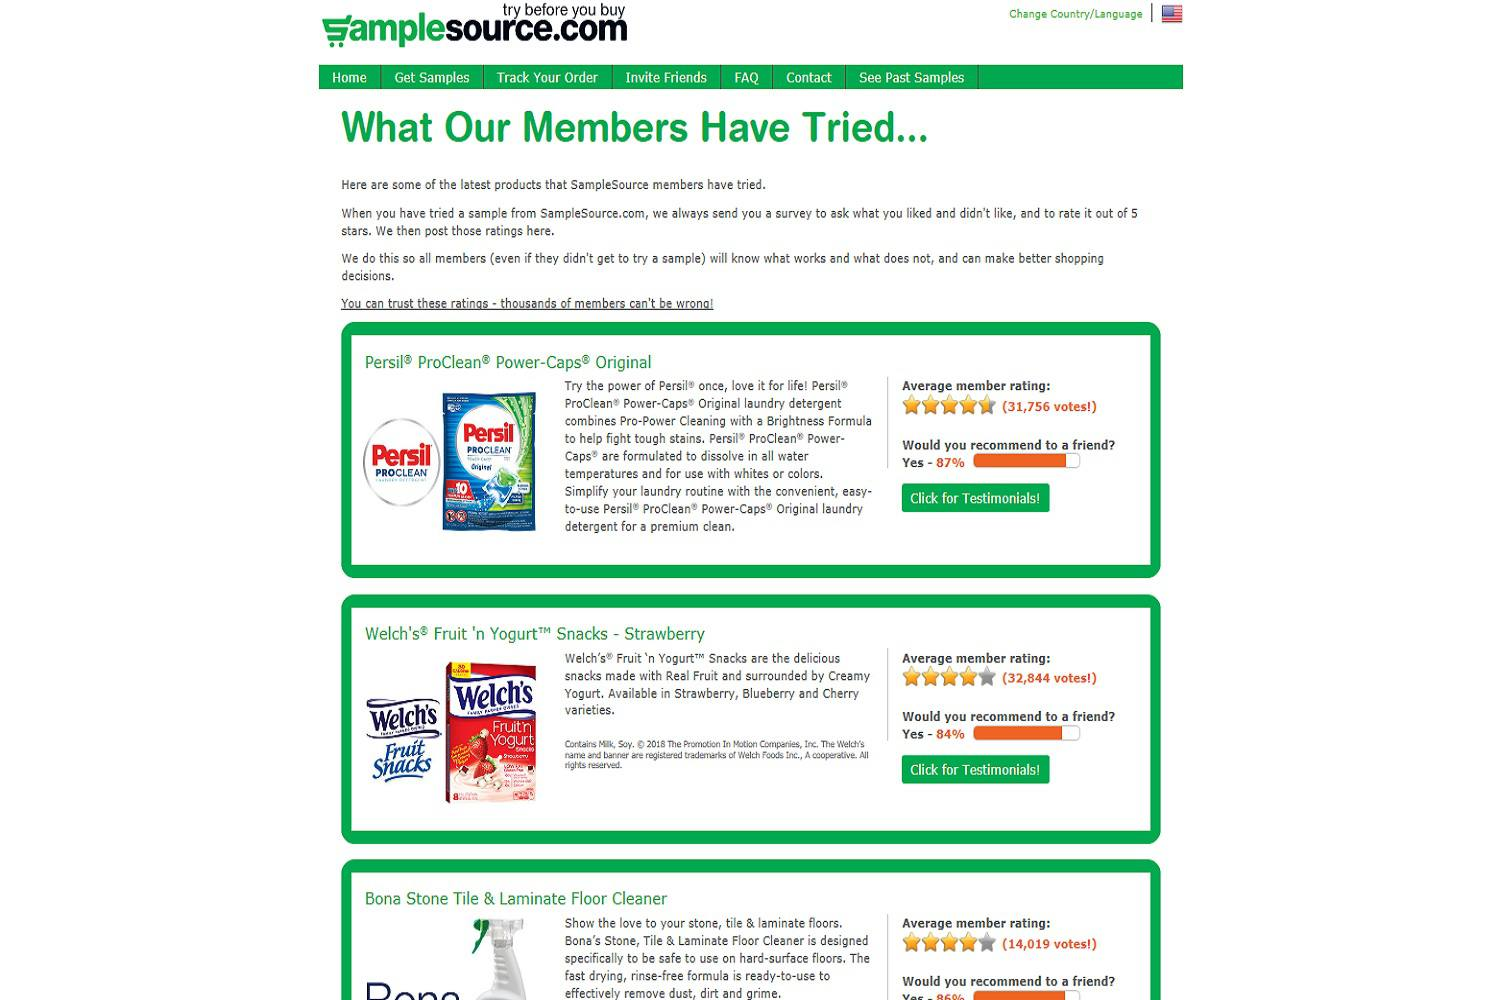 A screenshot of the SampleSource.com website showing past free samples, including free food product samples.